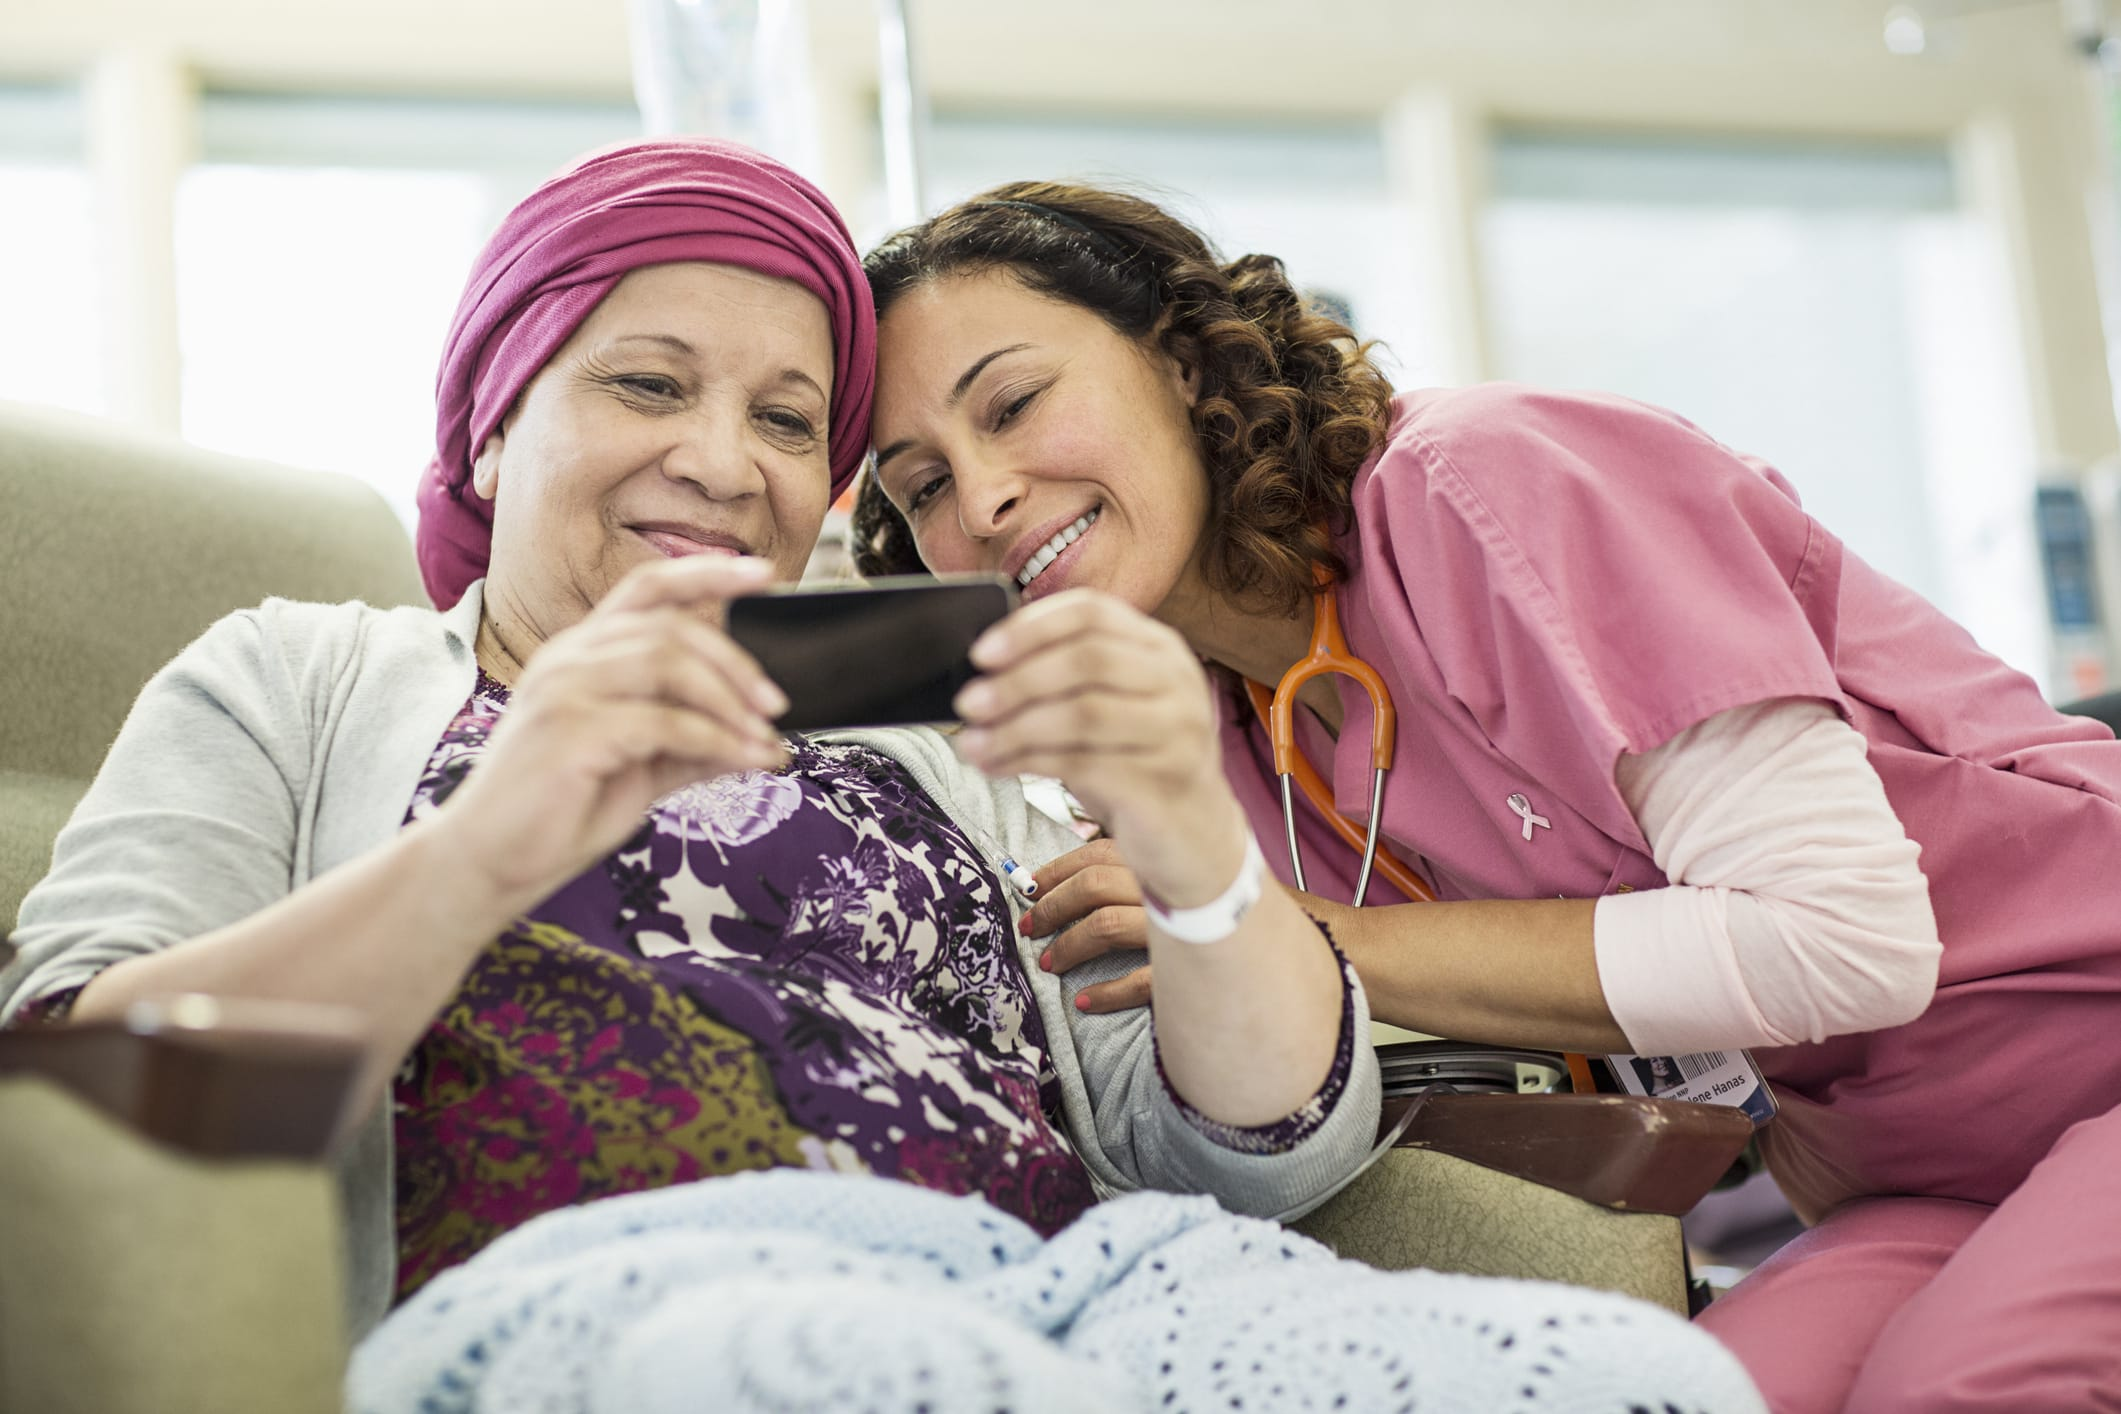 A chemotherapy patient and a cancer treatment specialist smile as they look at photos on a phone together